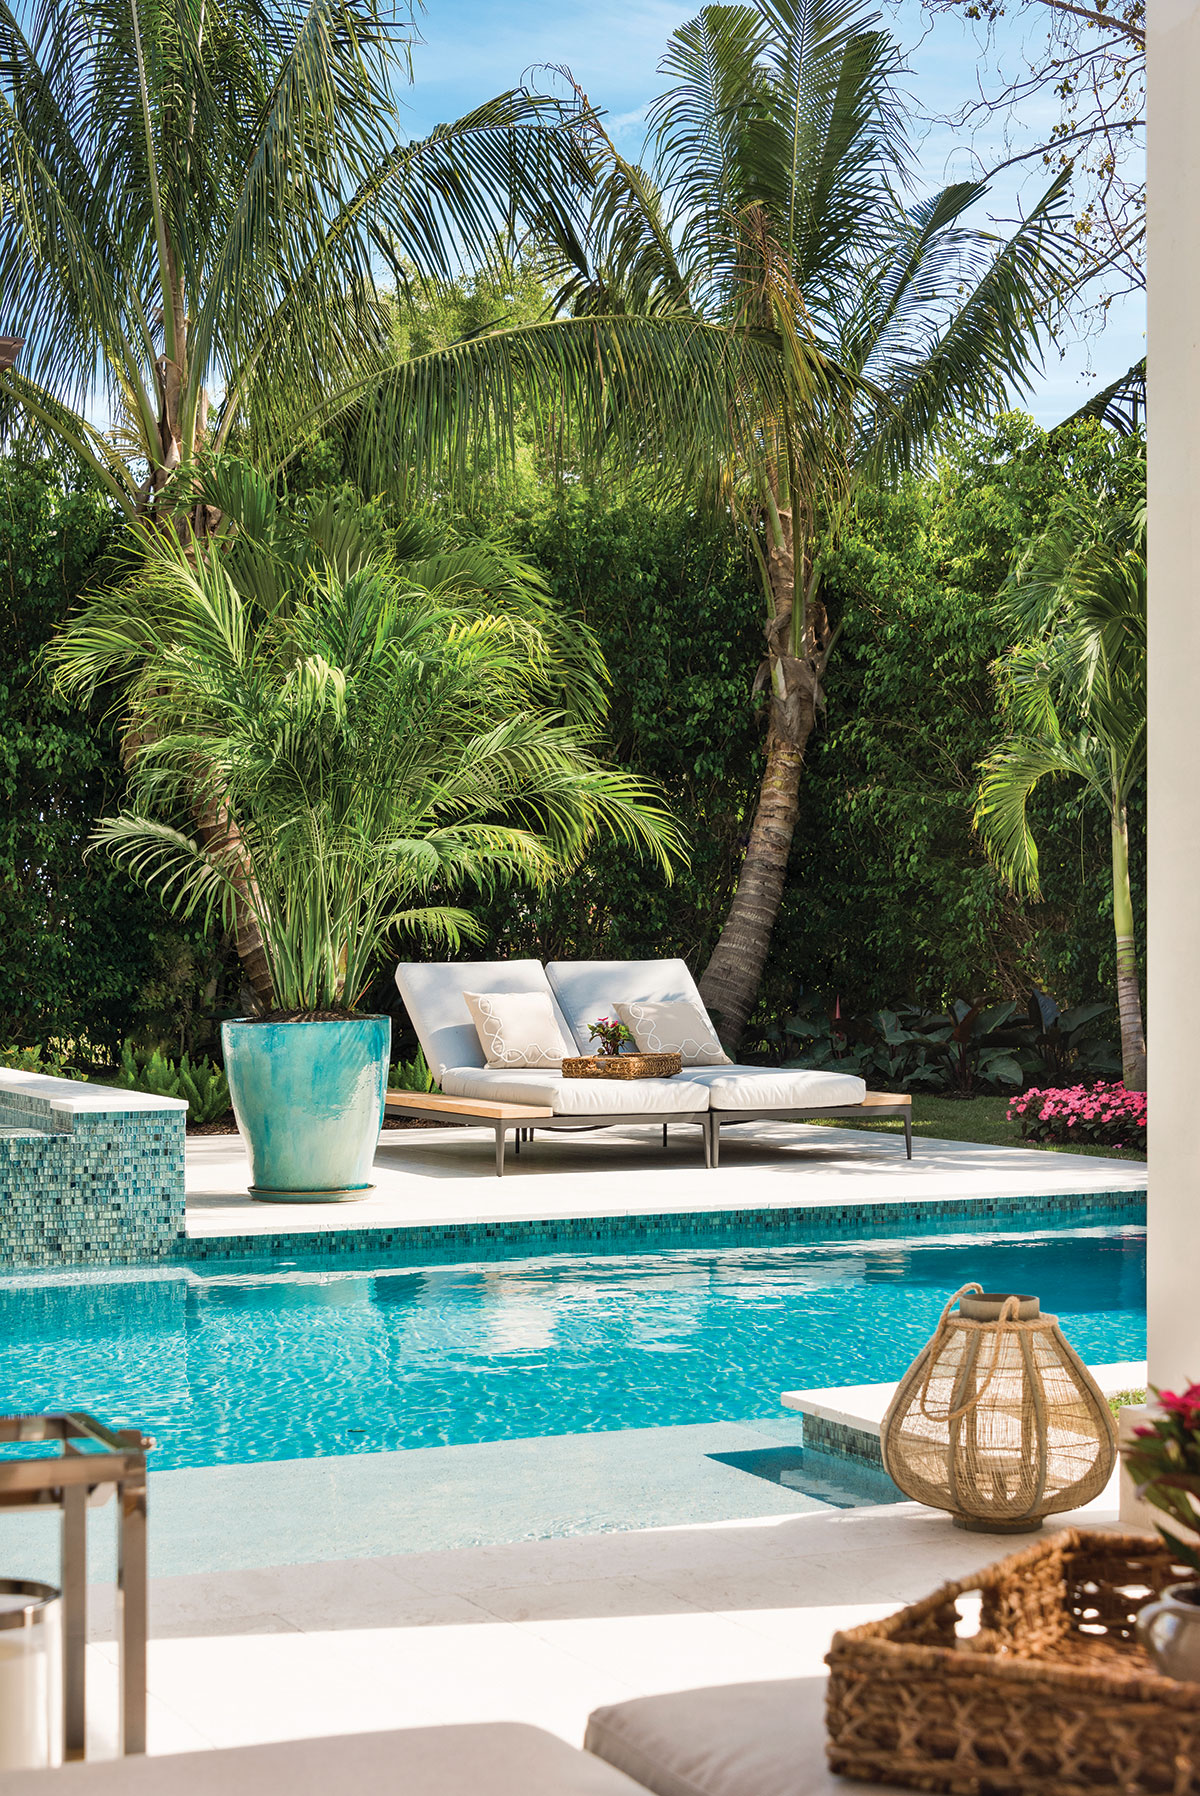 Lounge chairs from Gloster Furniture adorned with accent pillows from Calusa Bay Design surround a sparkling pool lined with mosaic tiles from Ceramic Matrix.